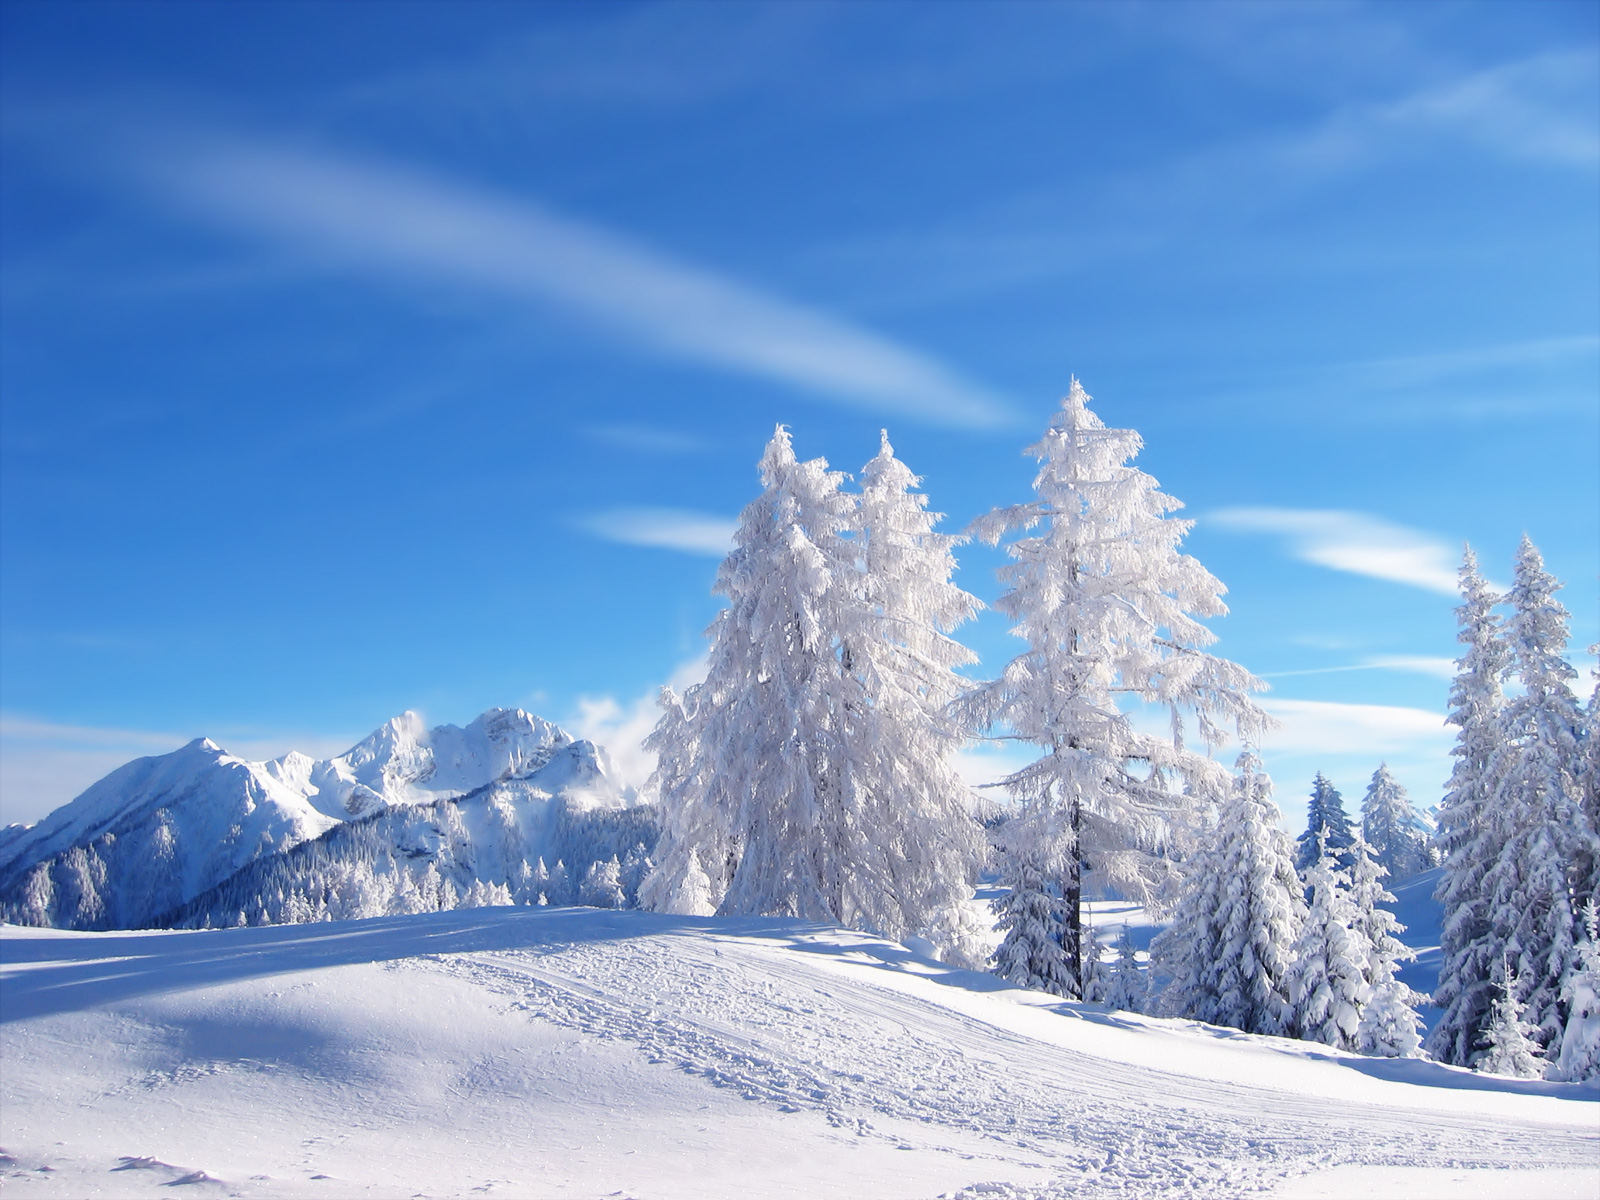 Winter Wallpapers HD: Free Winter Wallpapers HD